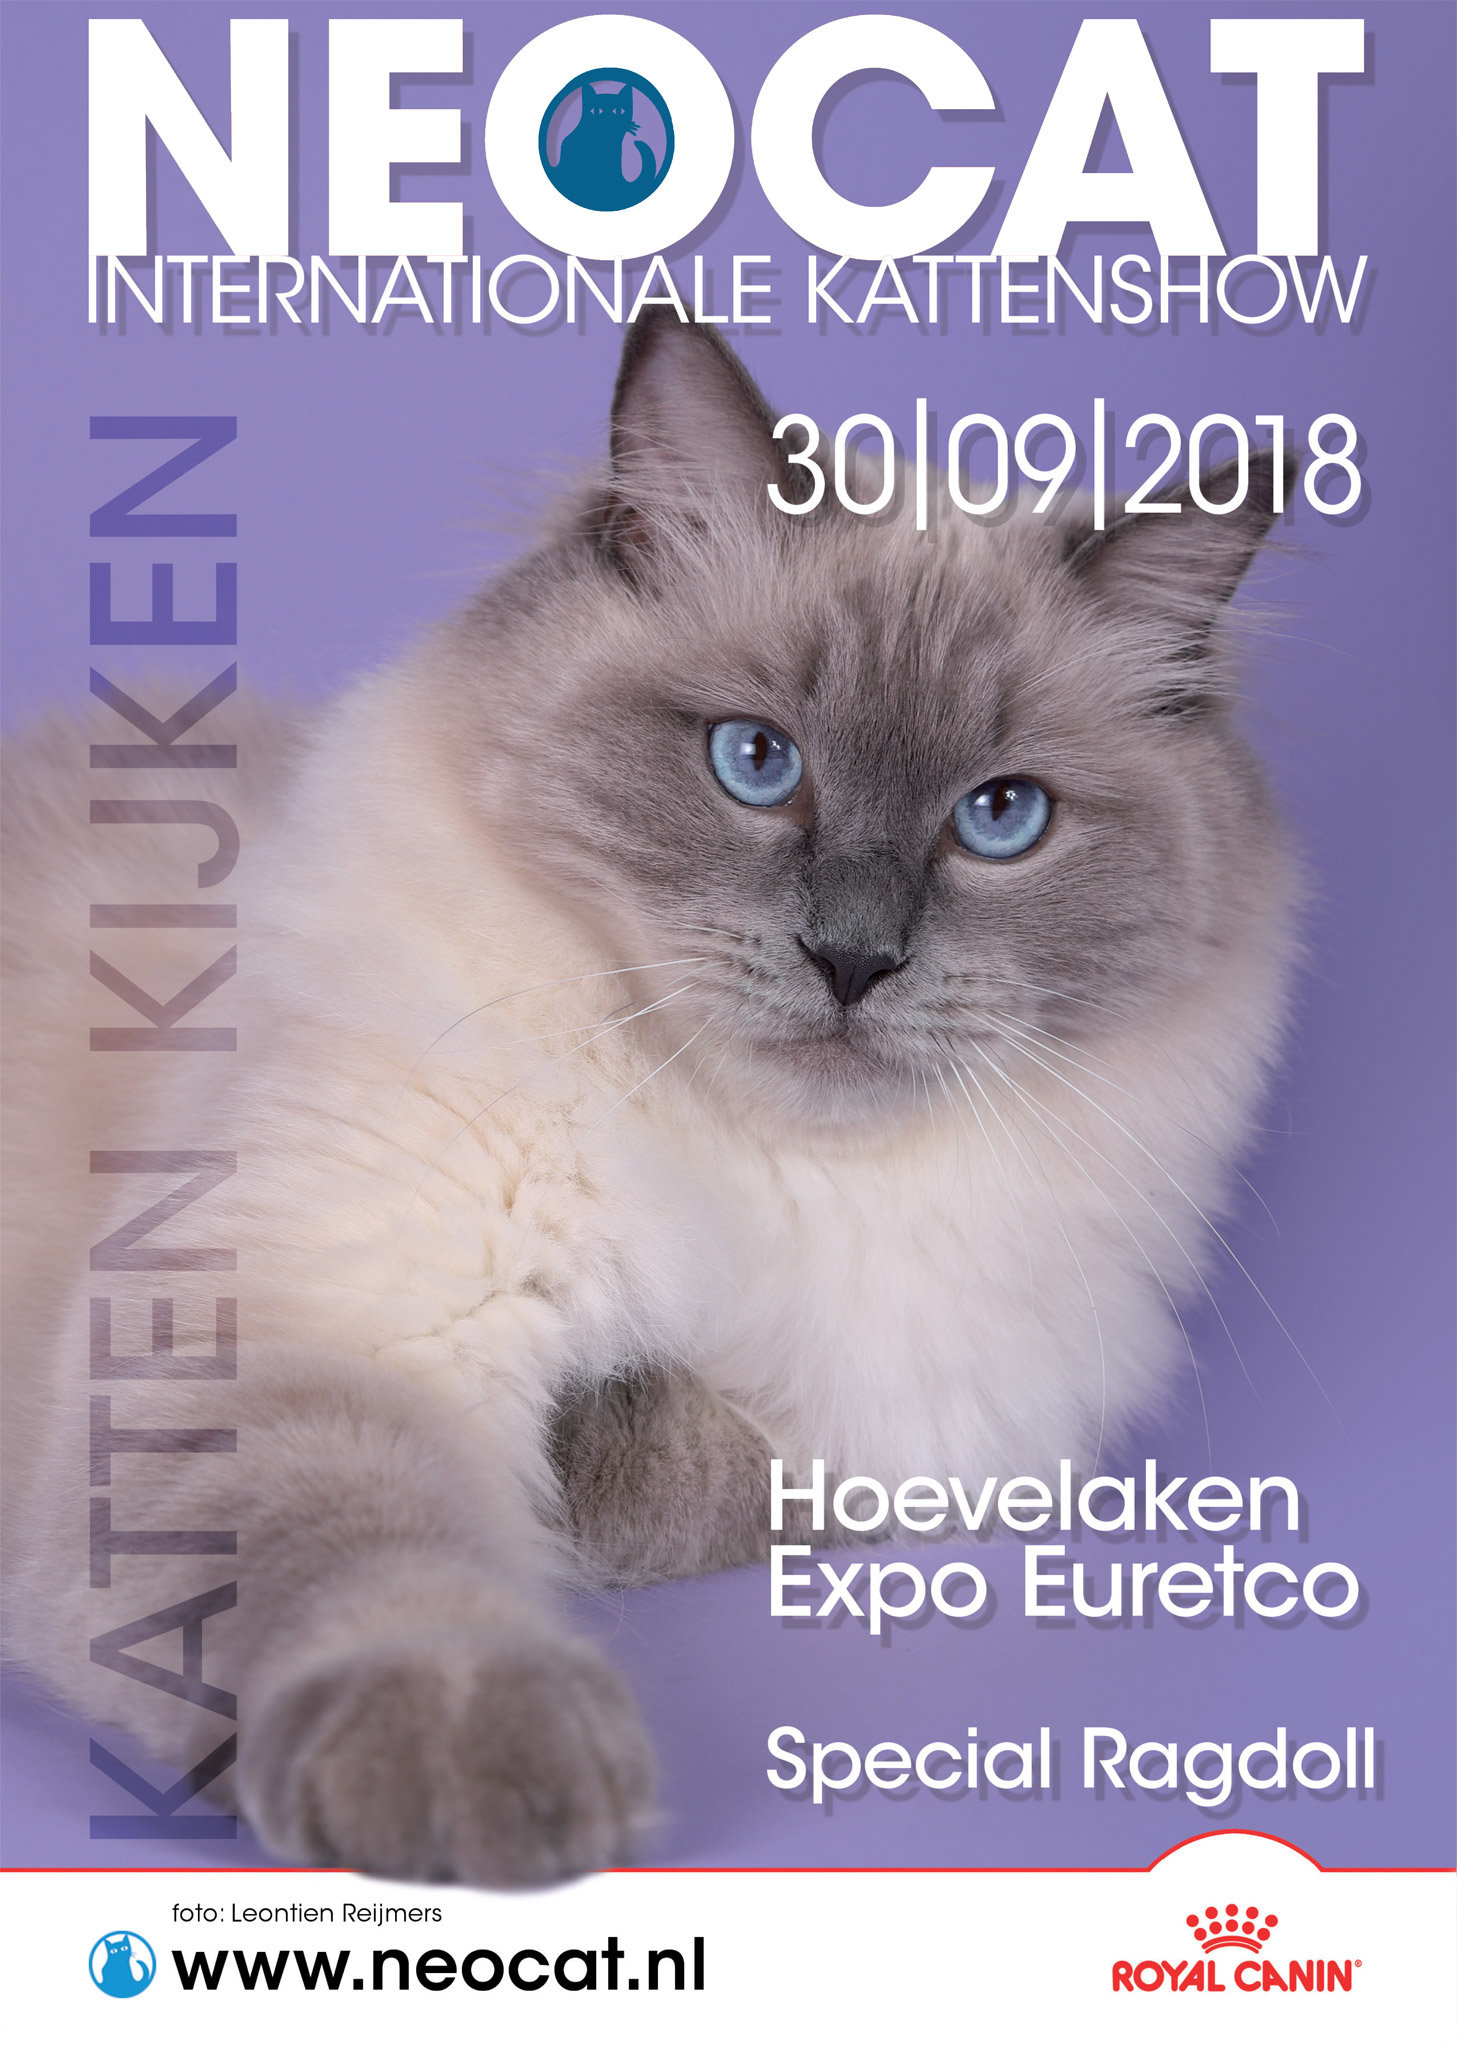 Kattenshow in Hoevelaken